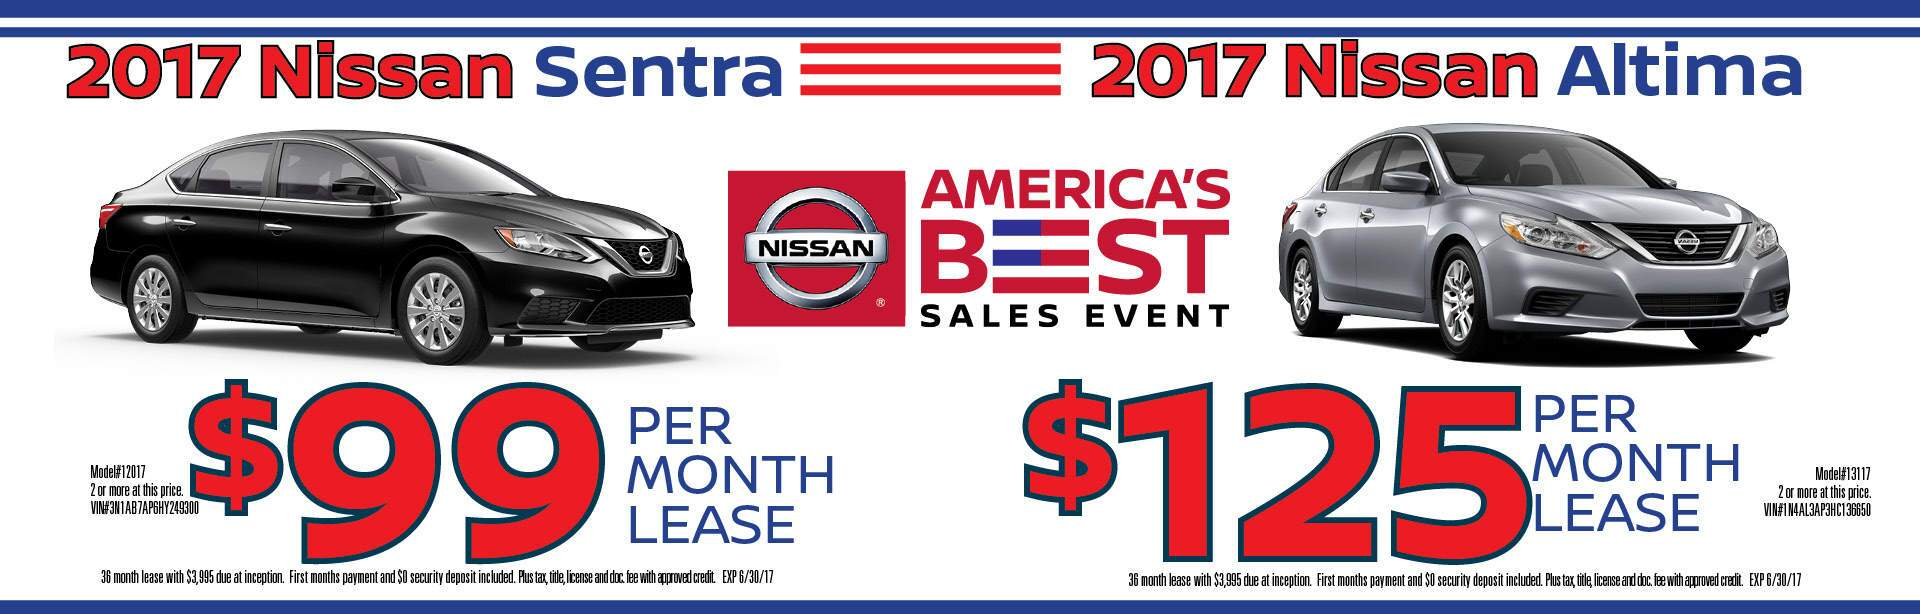 America's Best sales event for 2017 Altima Rogue Sentra and Murano Chicago IL